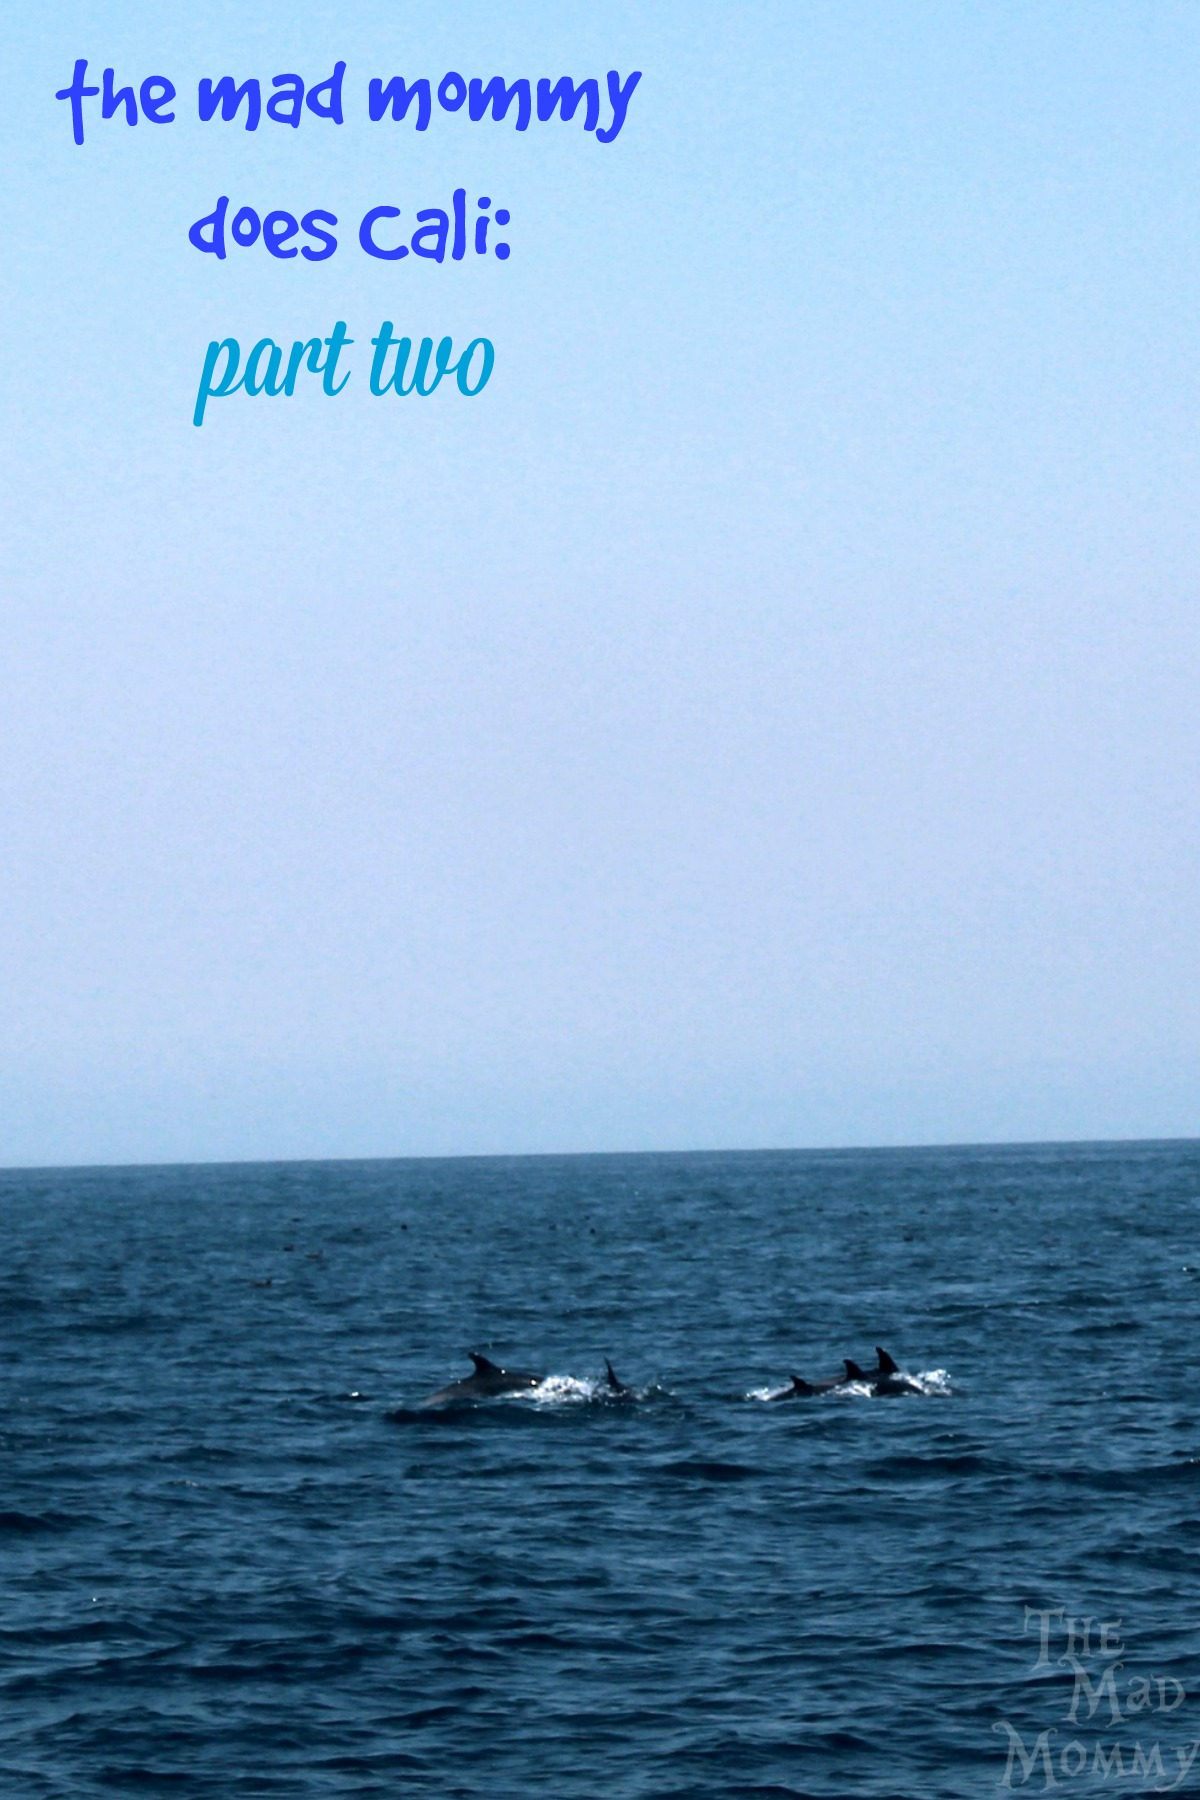 Whale watching has always been on my bucket list, so part two of The Mad Mommy Does Cali is all about the open water and watching for whales!